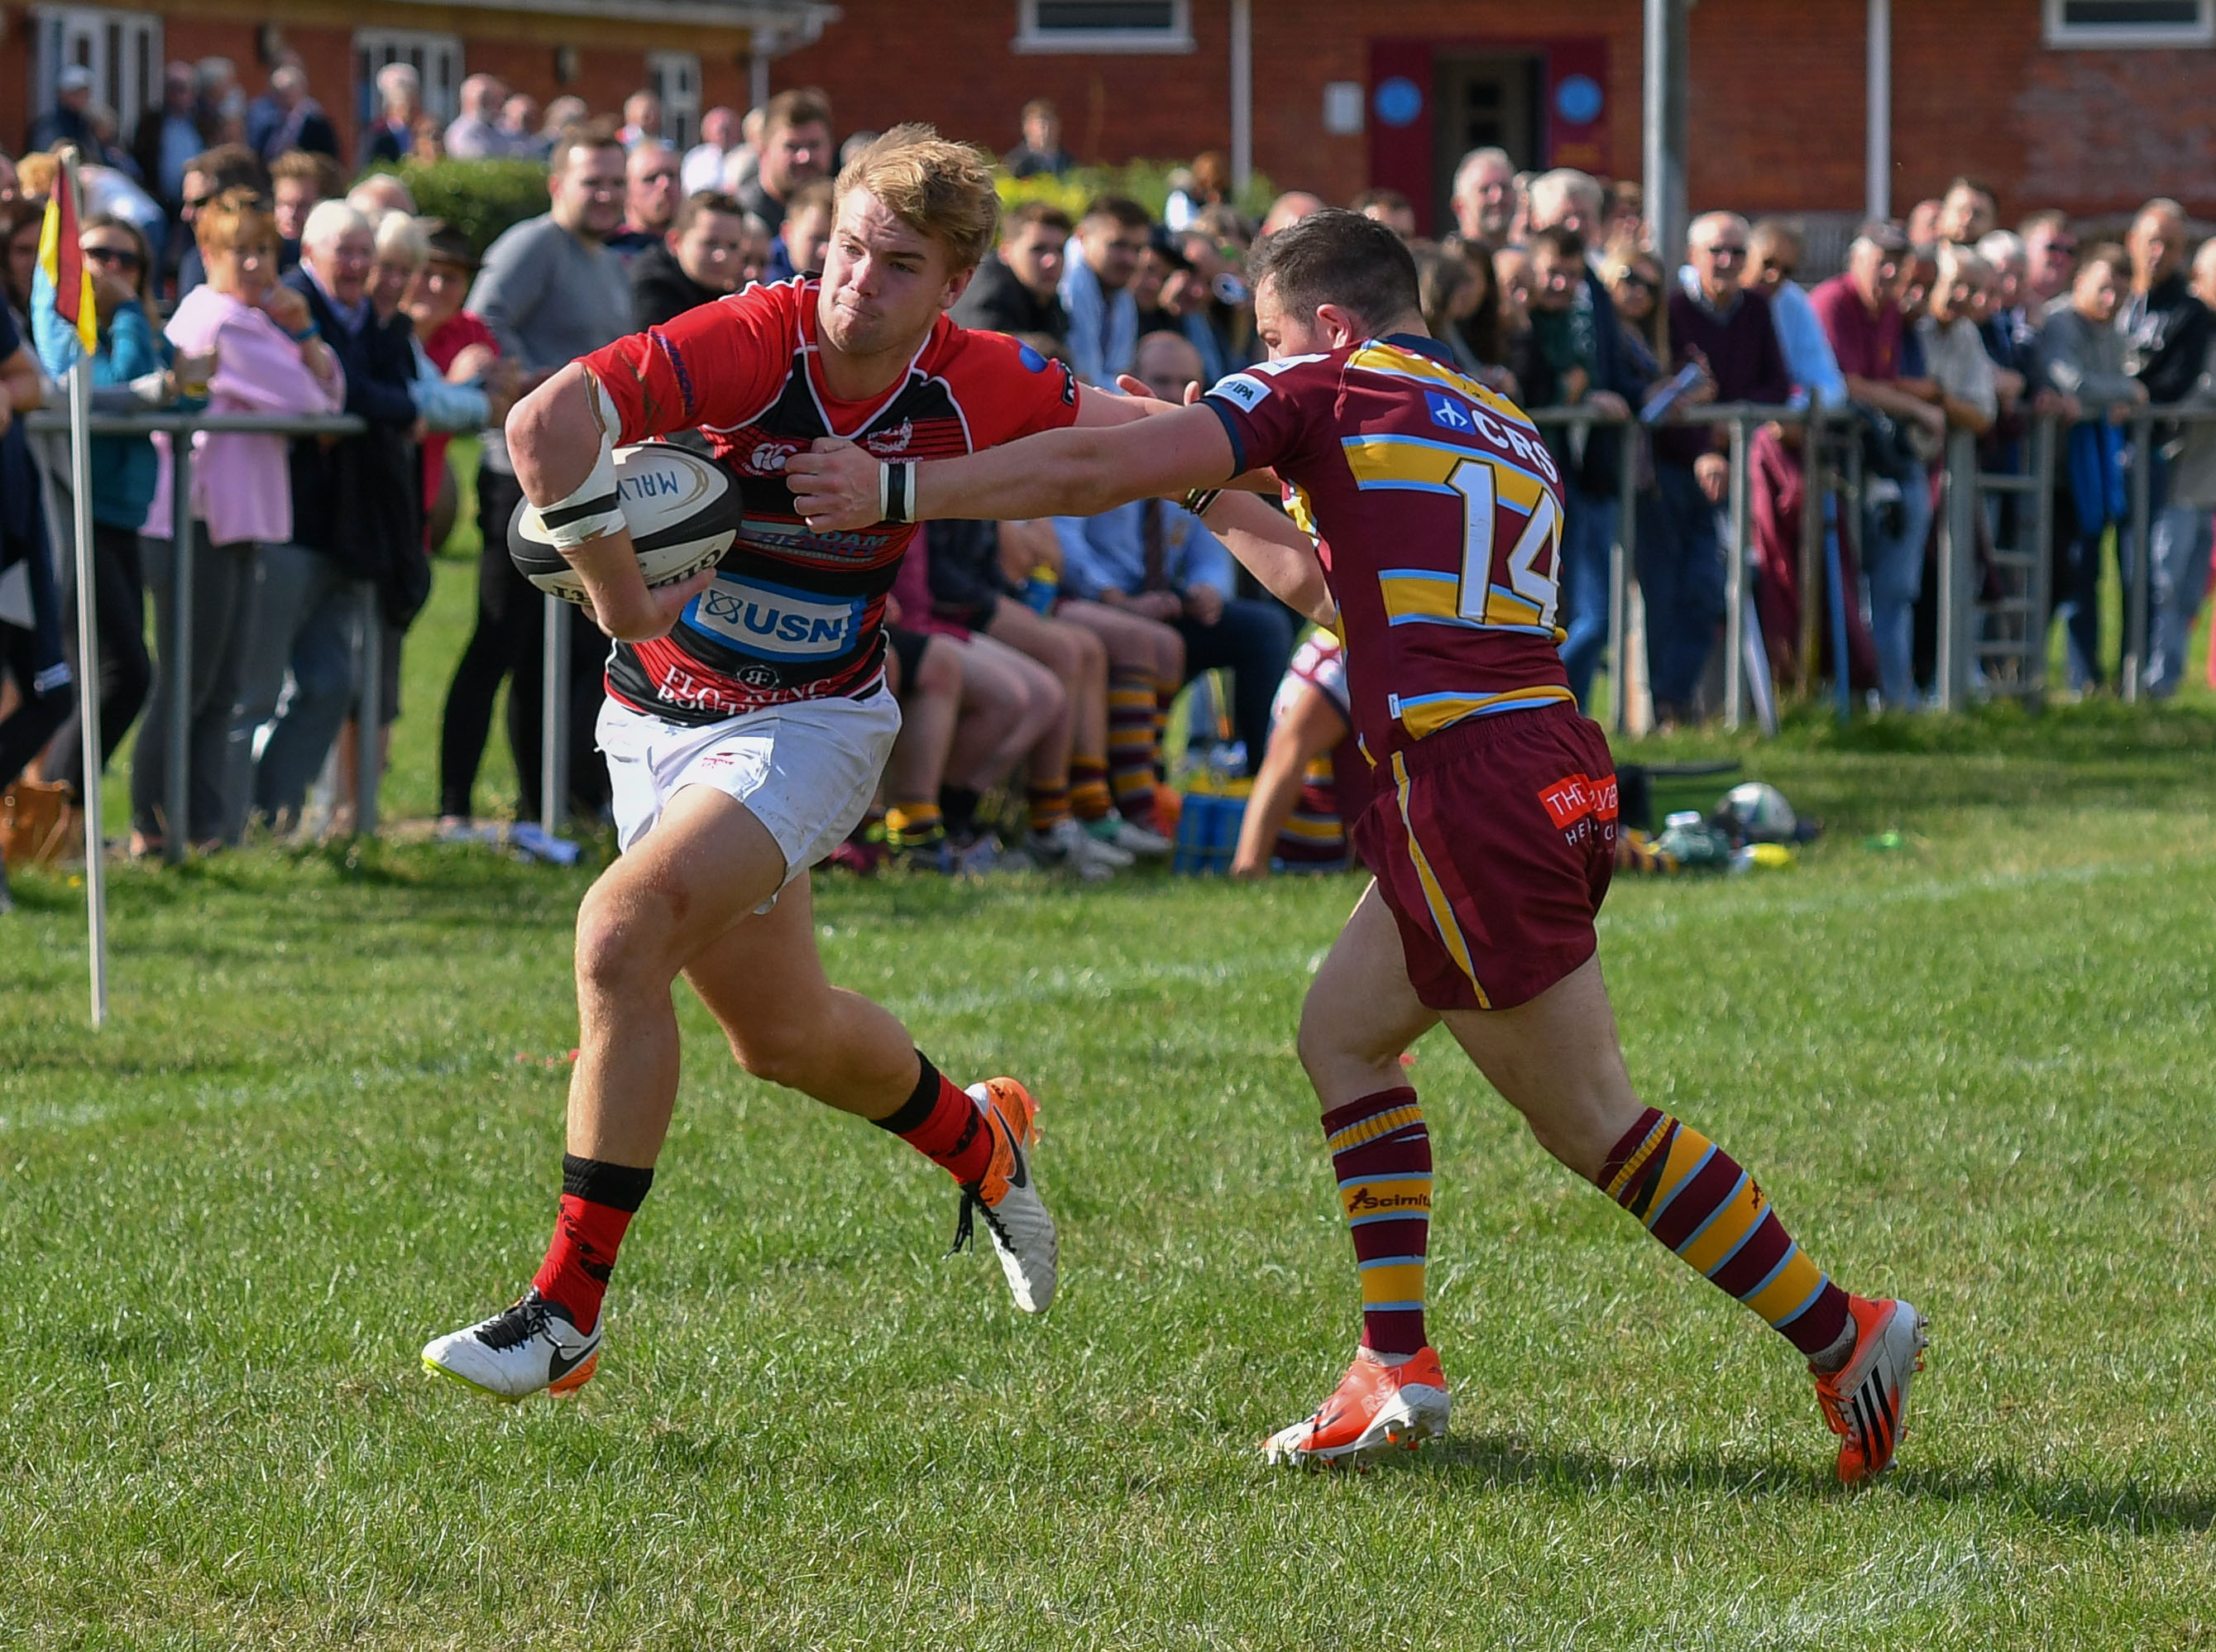 Action from Malvern v Bromsgrove